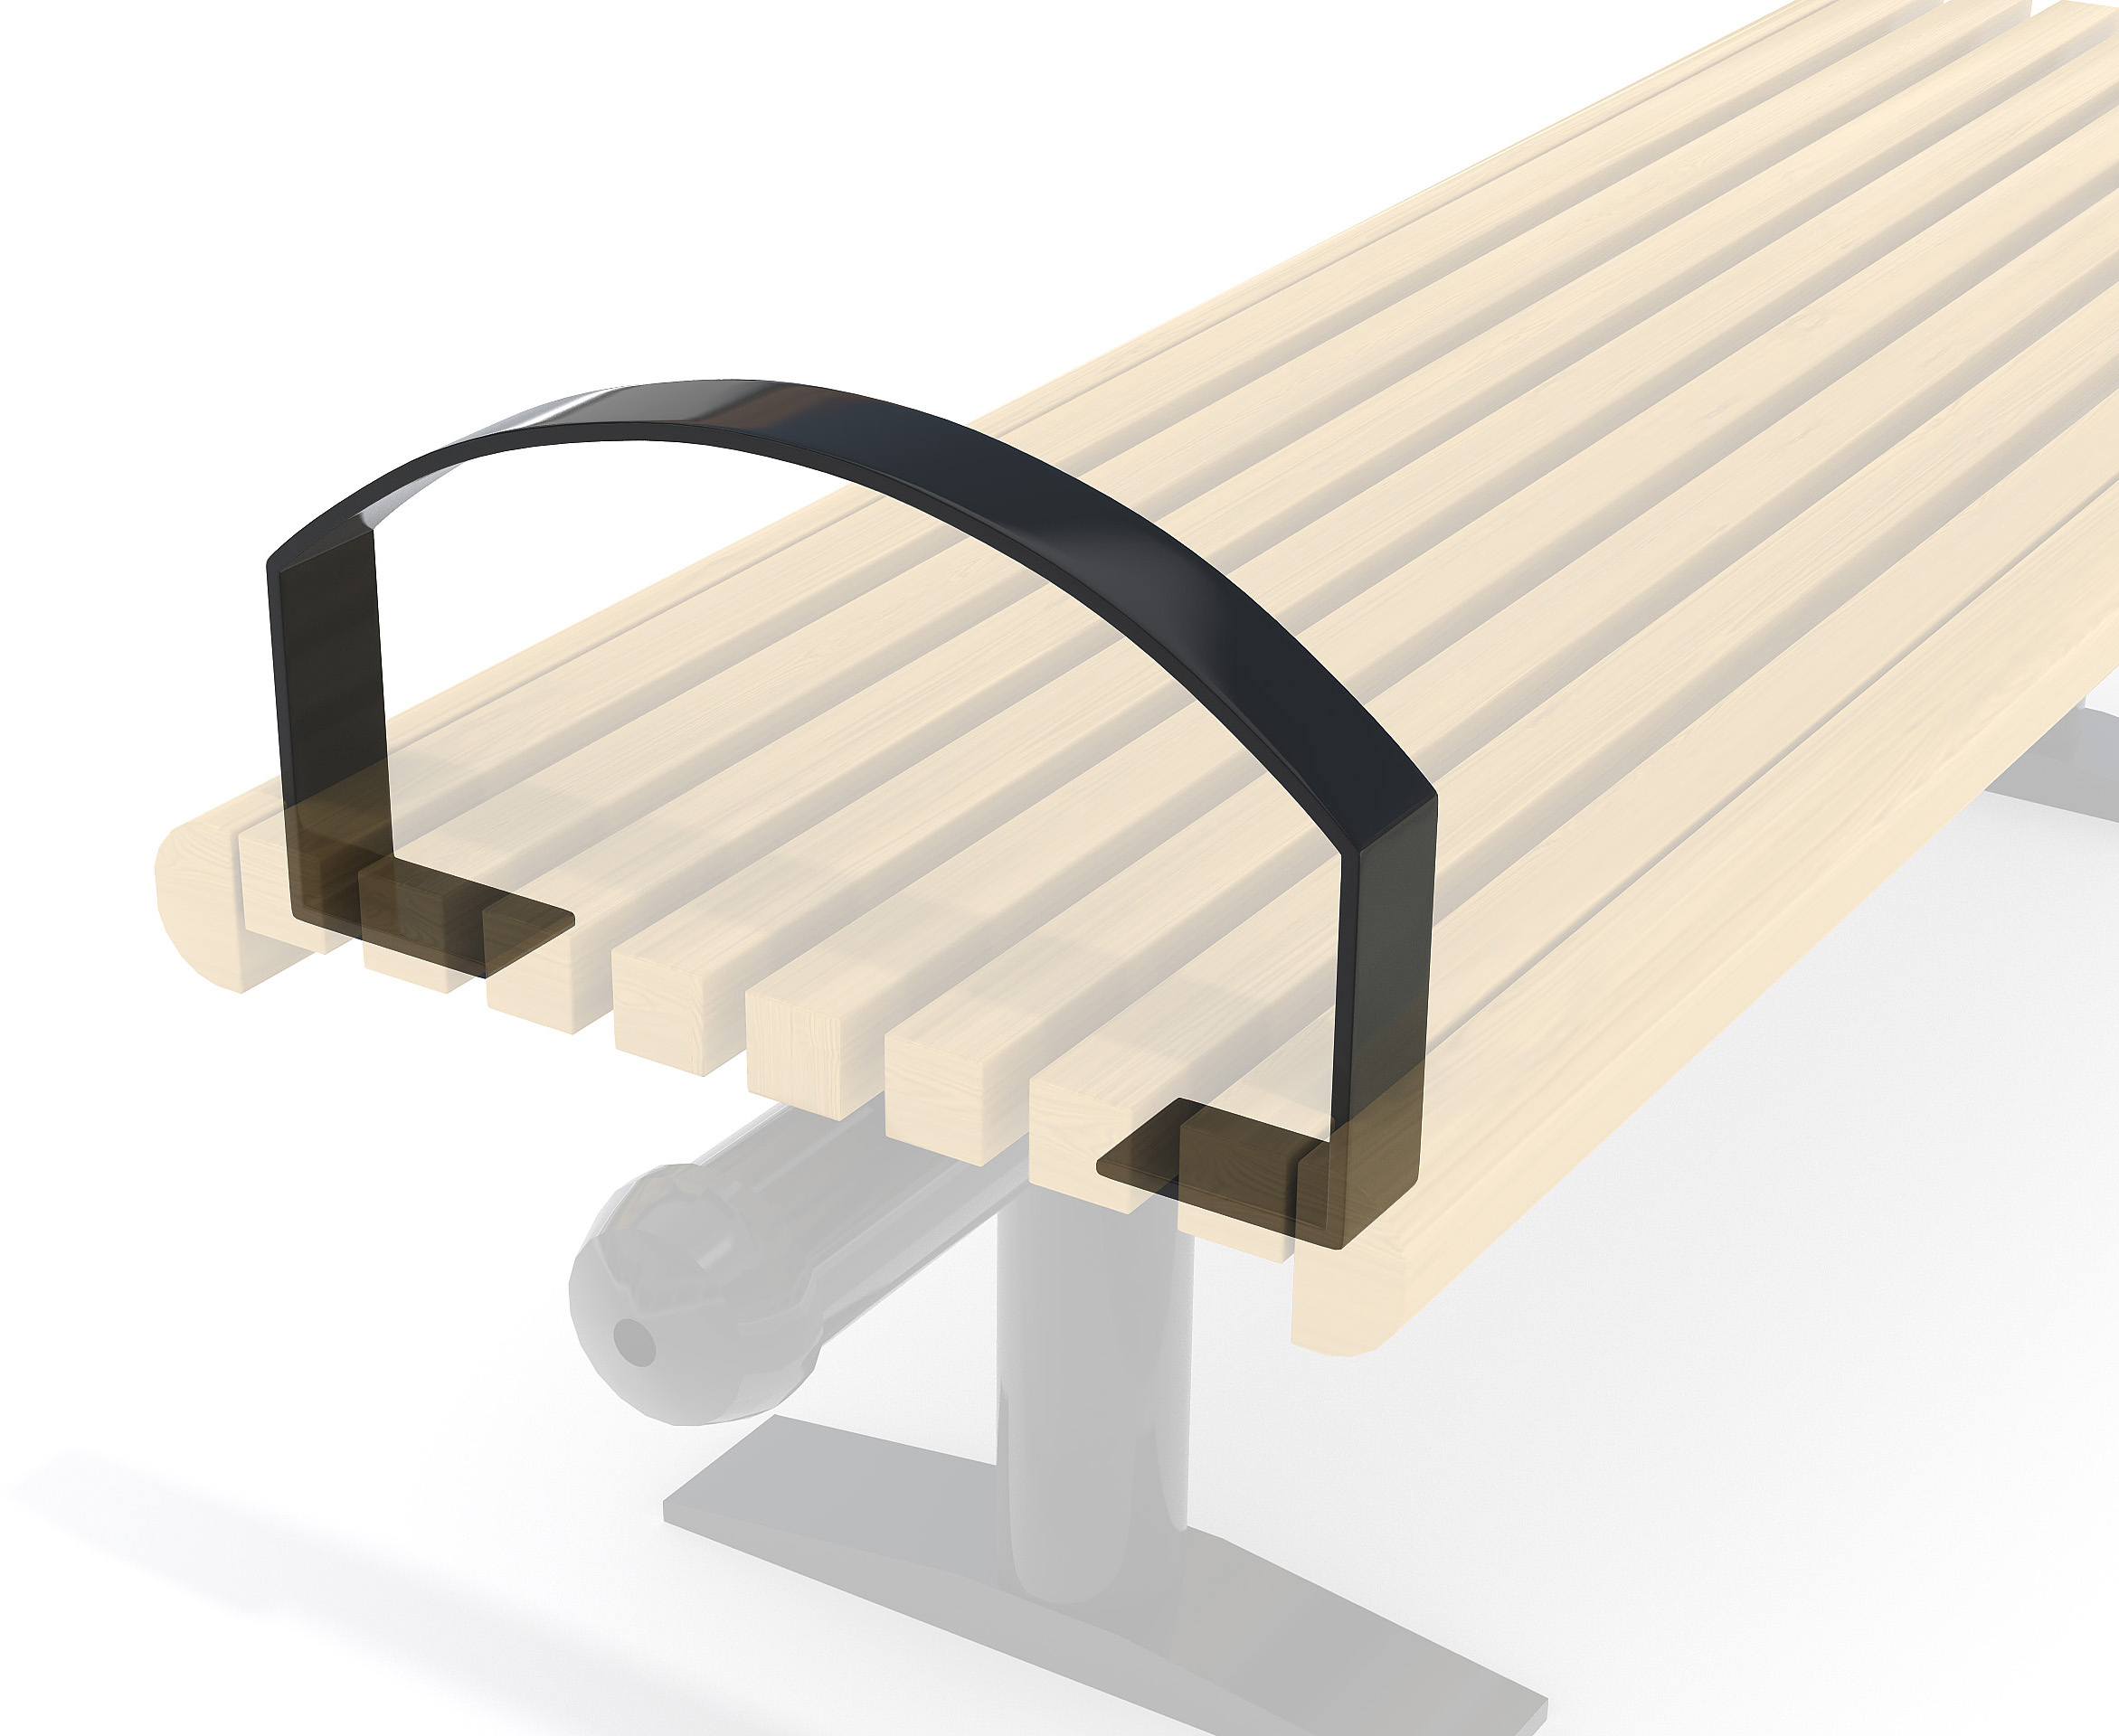 Armrest For City-Form Bench